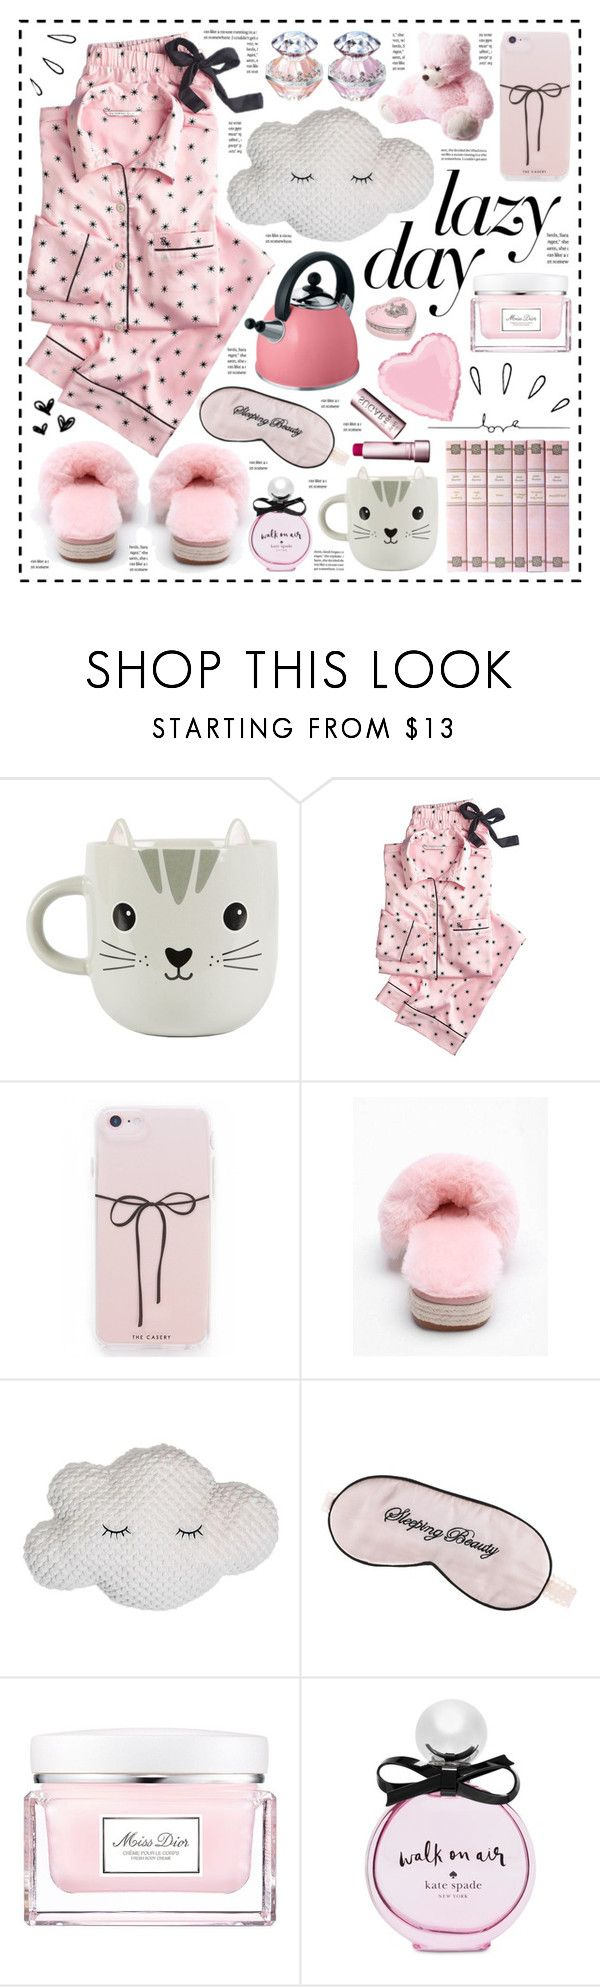 """Love for Lazy Day!"" by hennie-henne ❤ liked on Polyvore featuring Sass & Belle, Victoria's Secret, Kuhn Rikon, Mary Green, Christian Dior, Kate Spade and Old Navy"